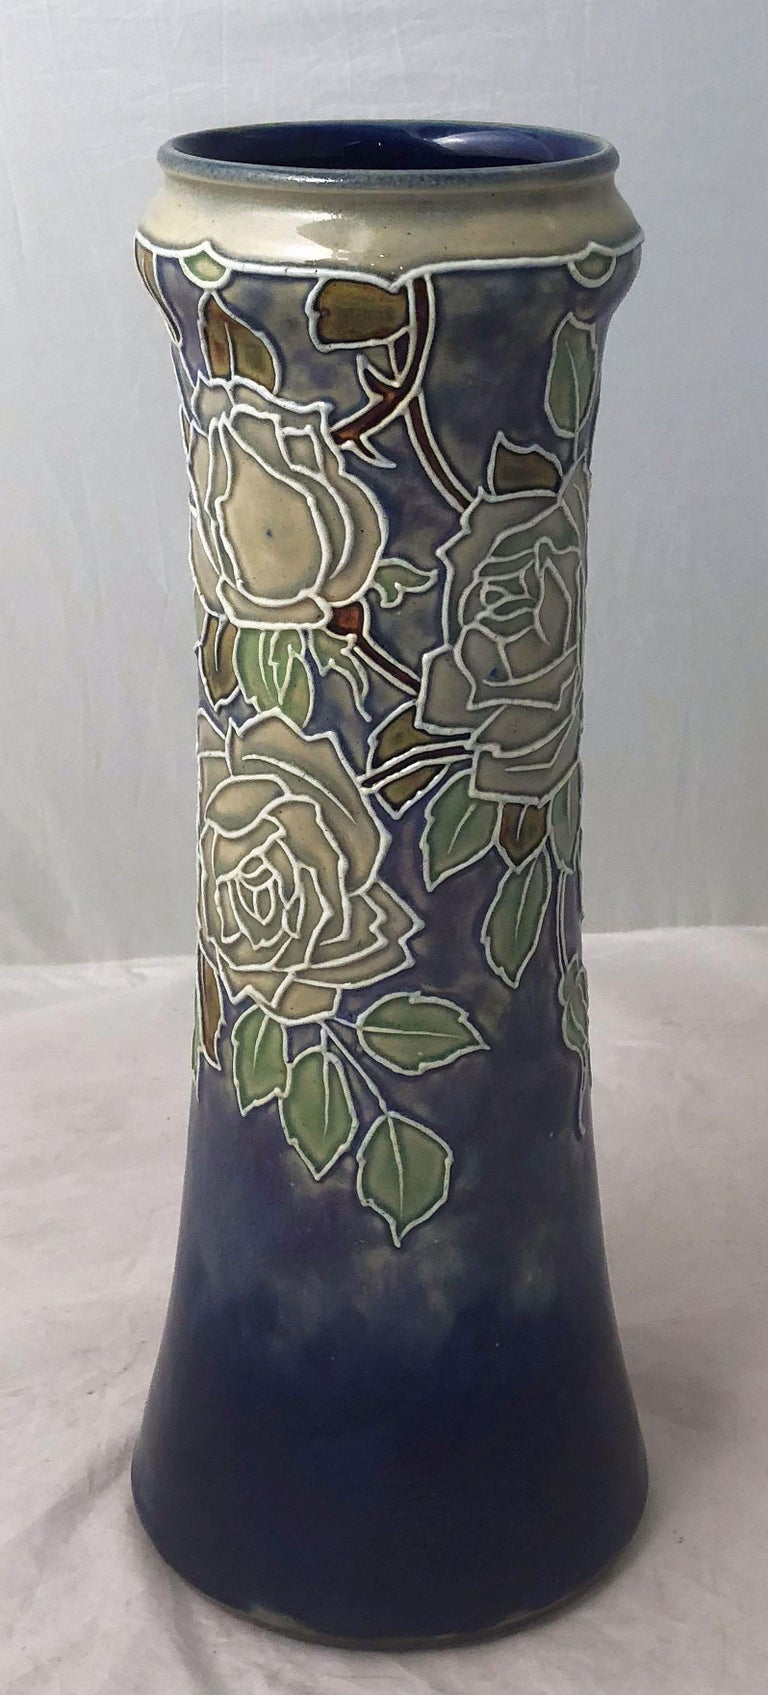 Pair of Royal Doulton Vases from the Arts & Crafts Period, 'Priced as a Pair' In Good Condition For Sale In Austin, TX